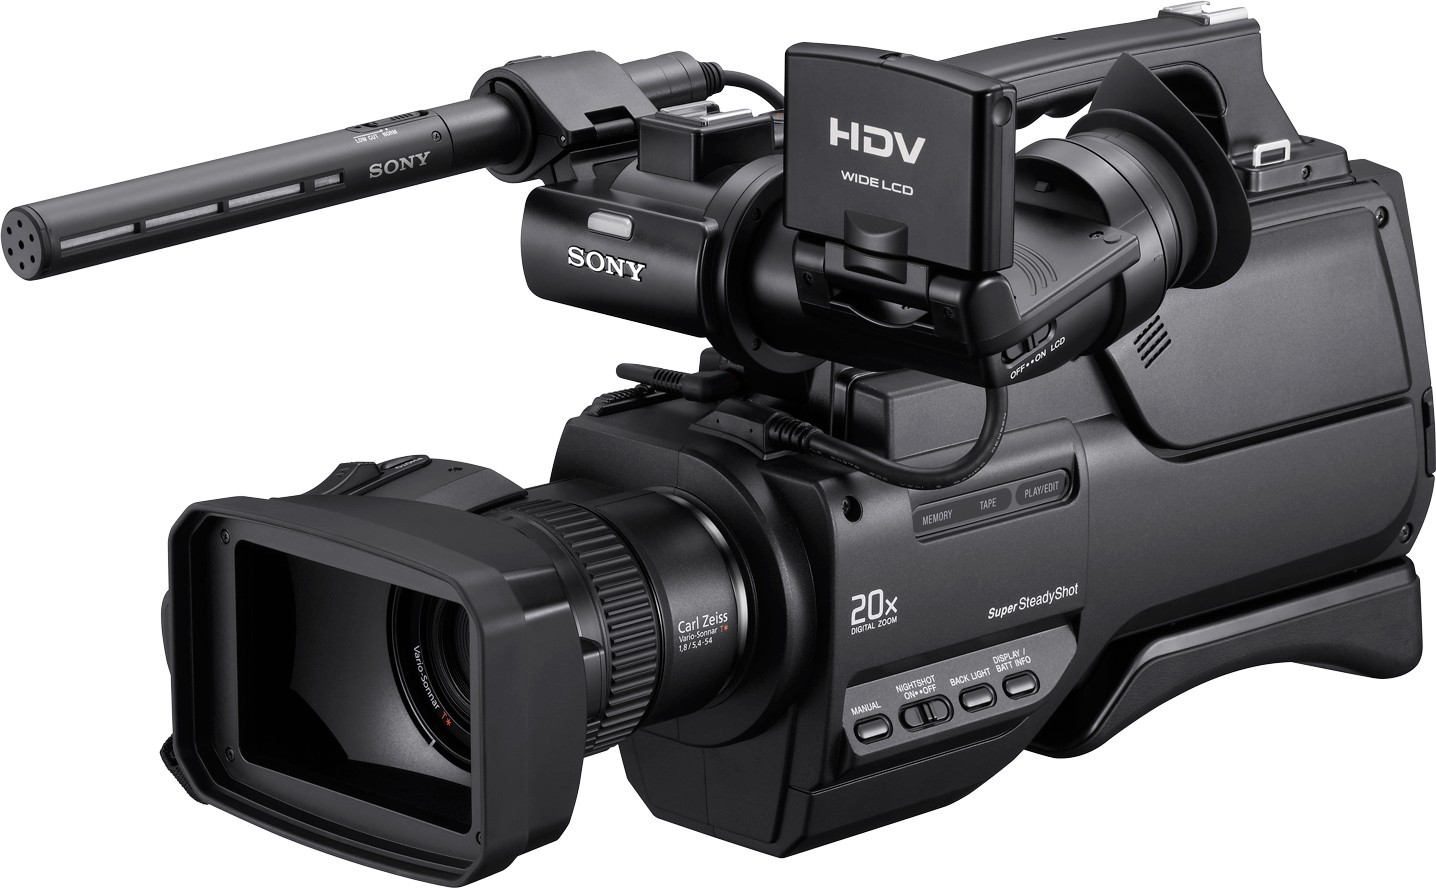 sony hvr hd1000e digital hd video camera mcdonald computers ltd. Black Bedroom Furniture Sets. Home Design Ideas